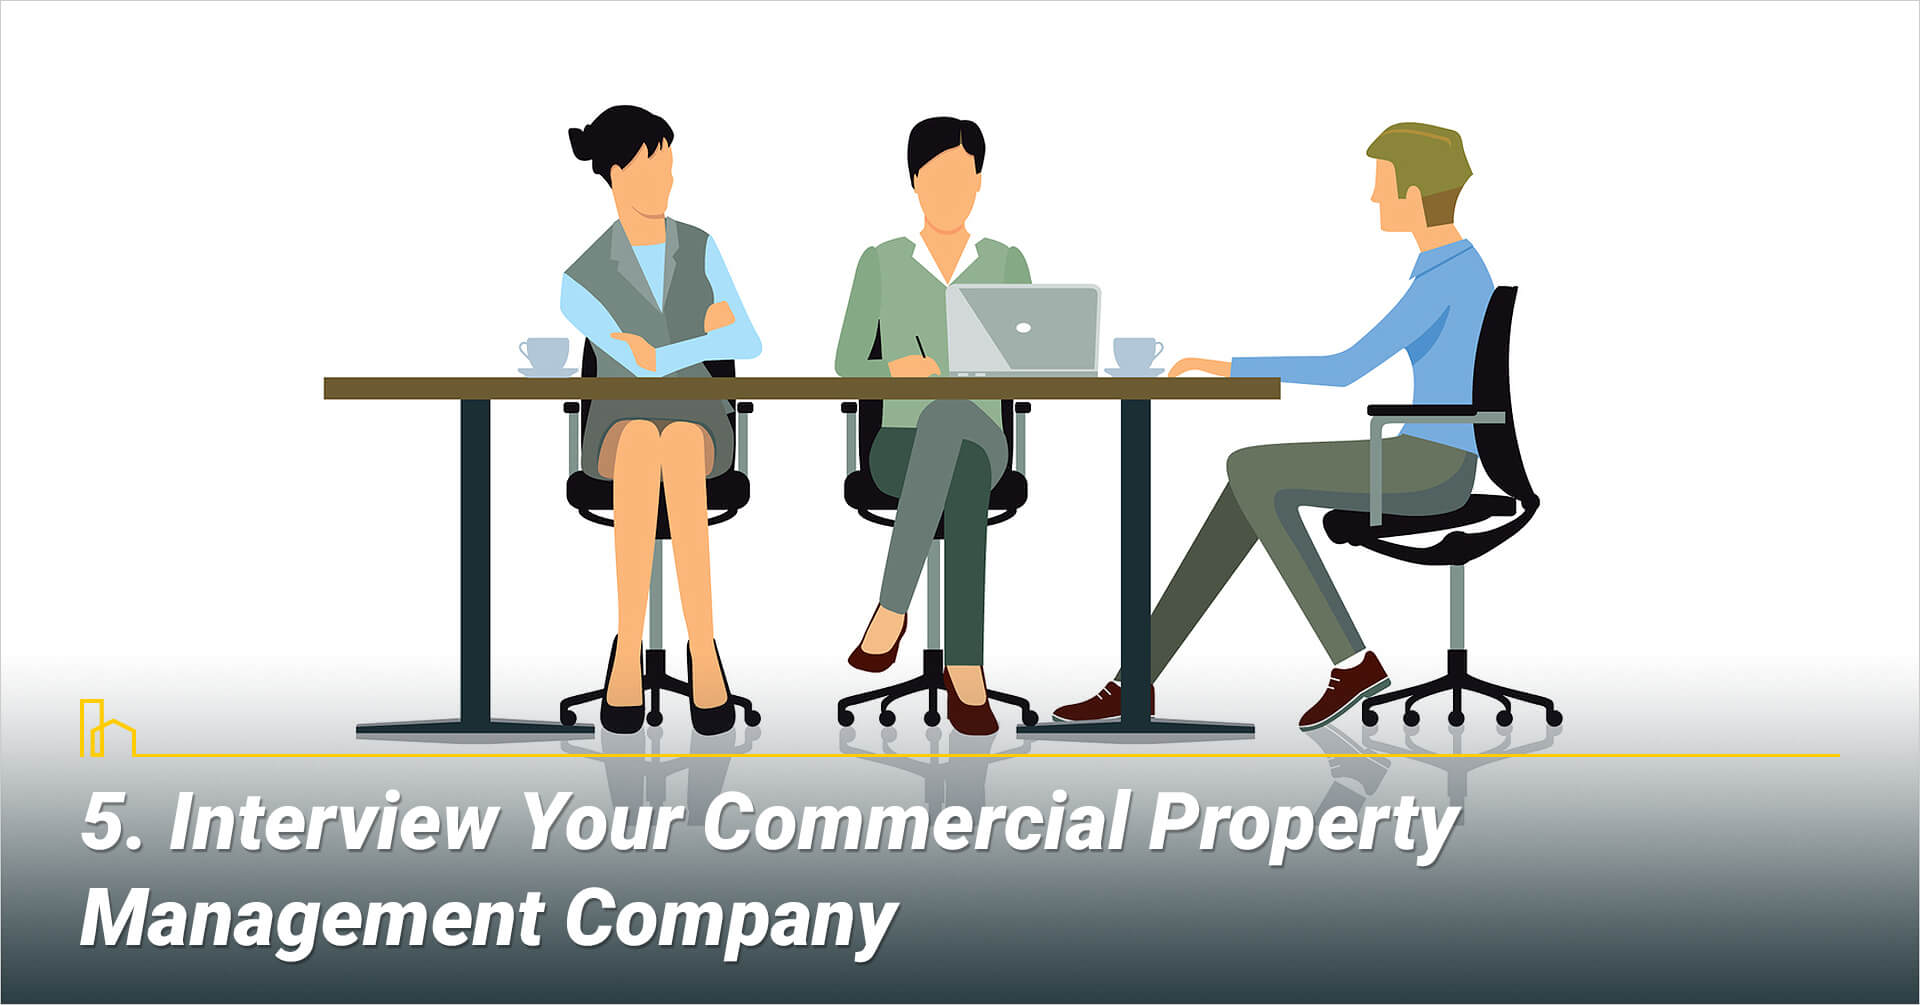 Interview Your Commercial Property Management Company